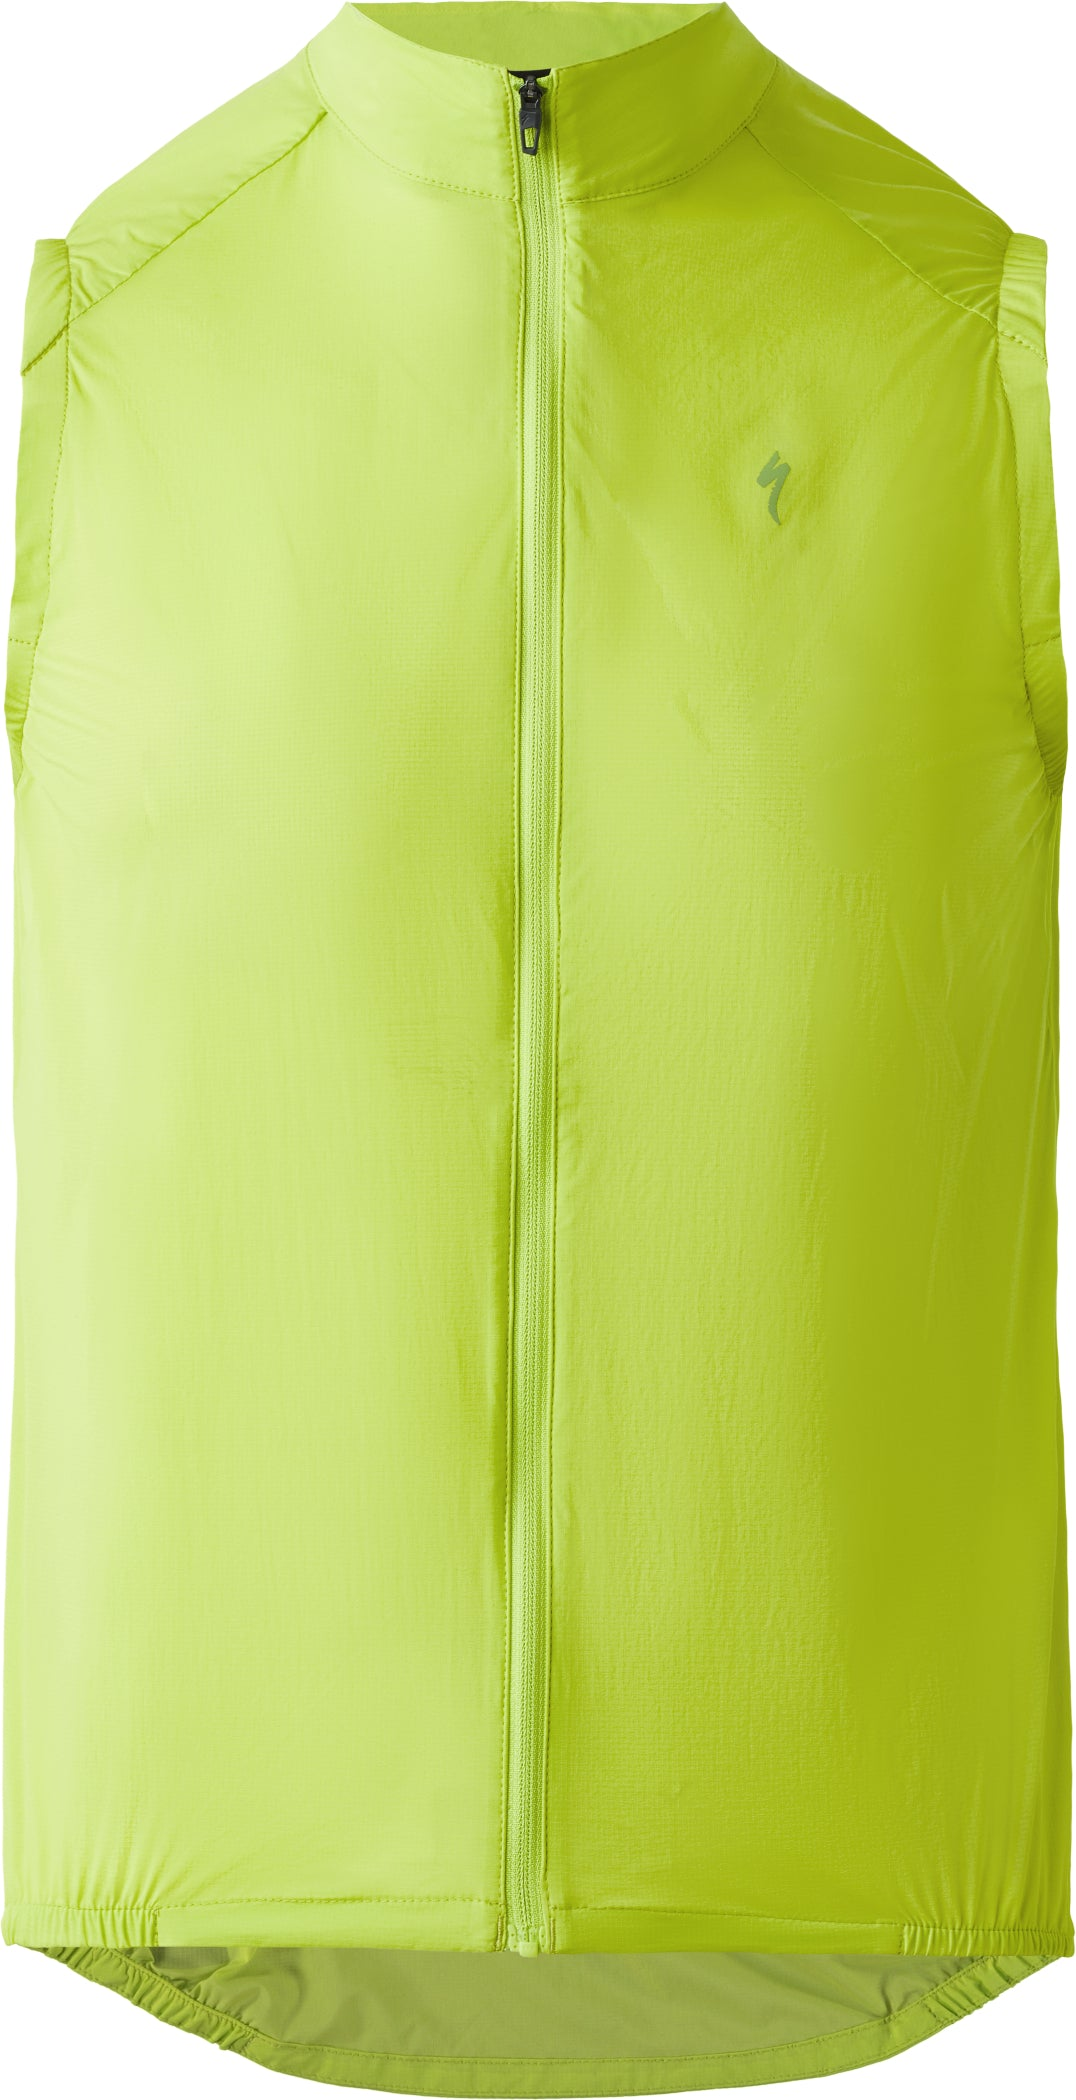 Men's HyprViz Deflect Wind Vest